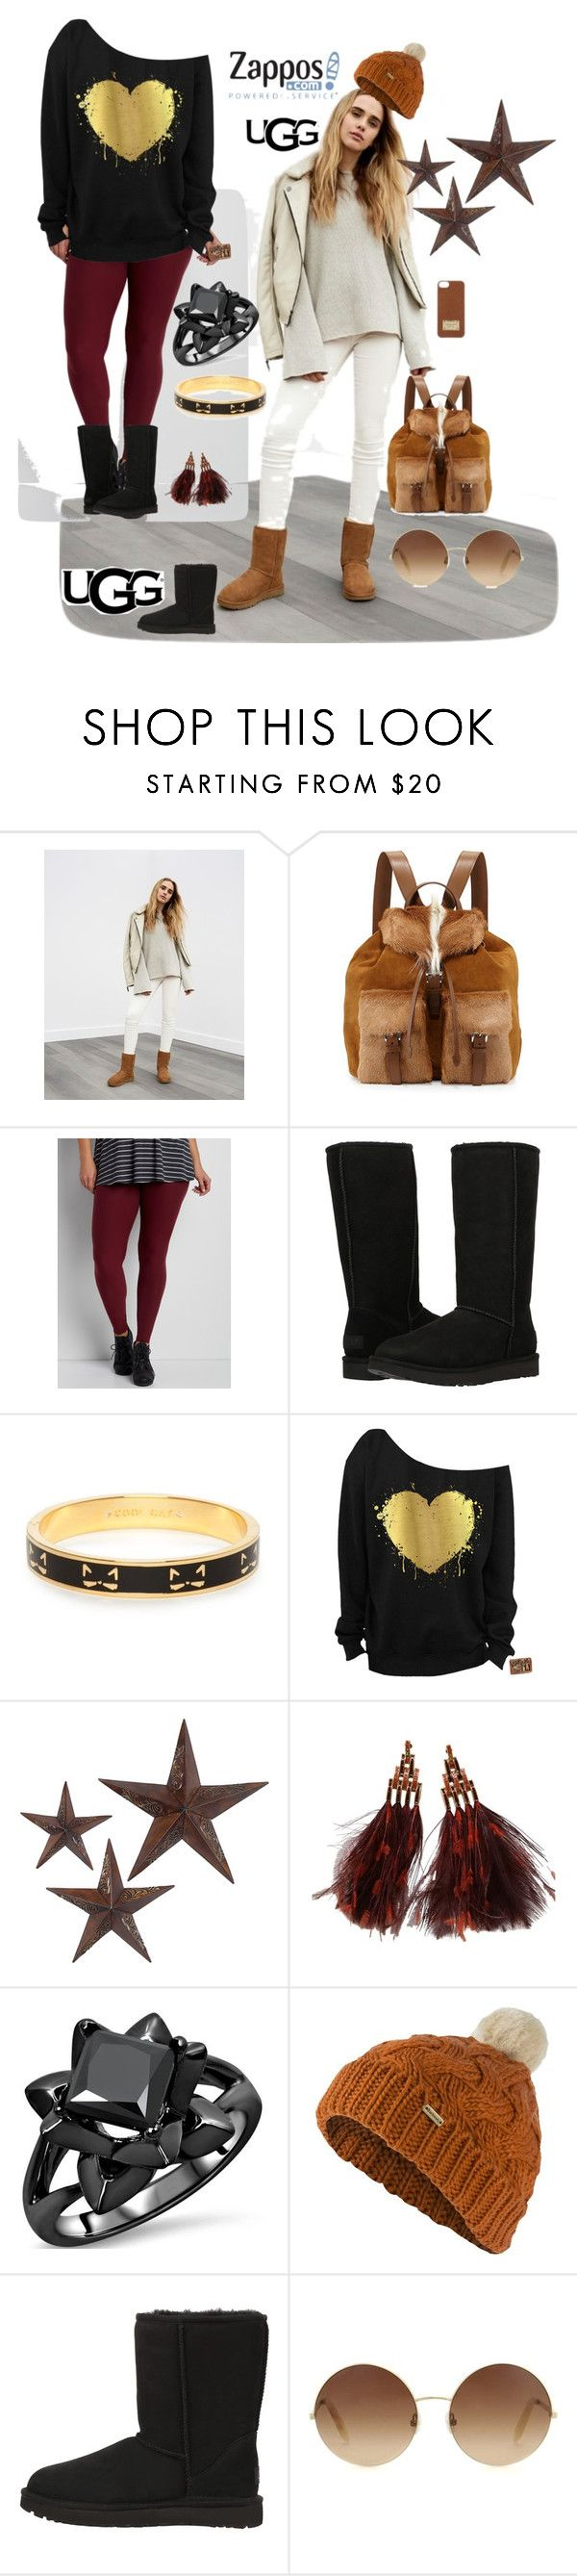 """The Icon Perfected: UGG Classic II Contest Entry"" by osiris-rojas ❤ liked on Polyvore featuring UGG, Prada, maurices, UGG Australia, Kate Spade, jcp, Louis Vuitton, Barbour, Victoria Beckham and Michael Kors"